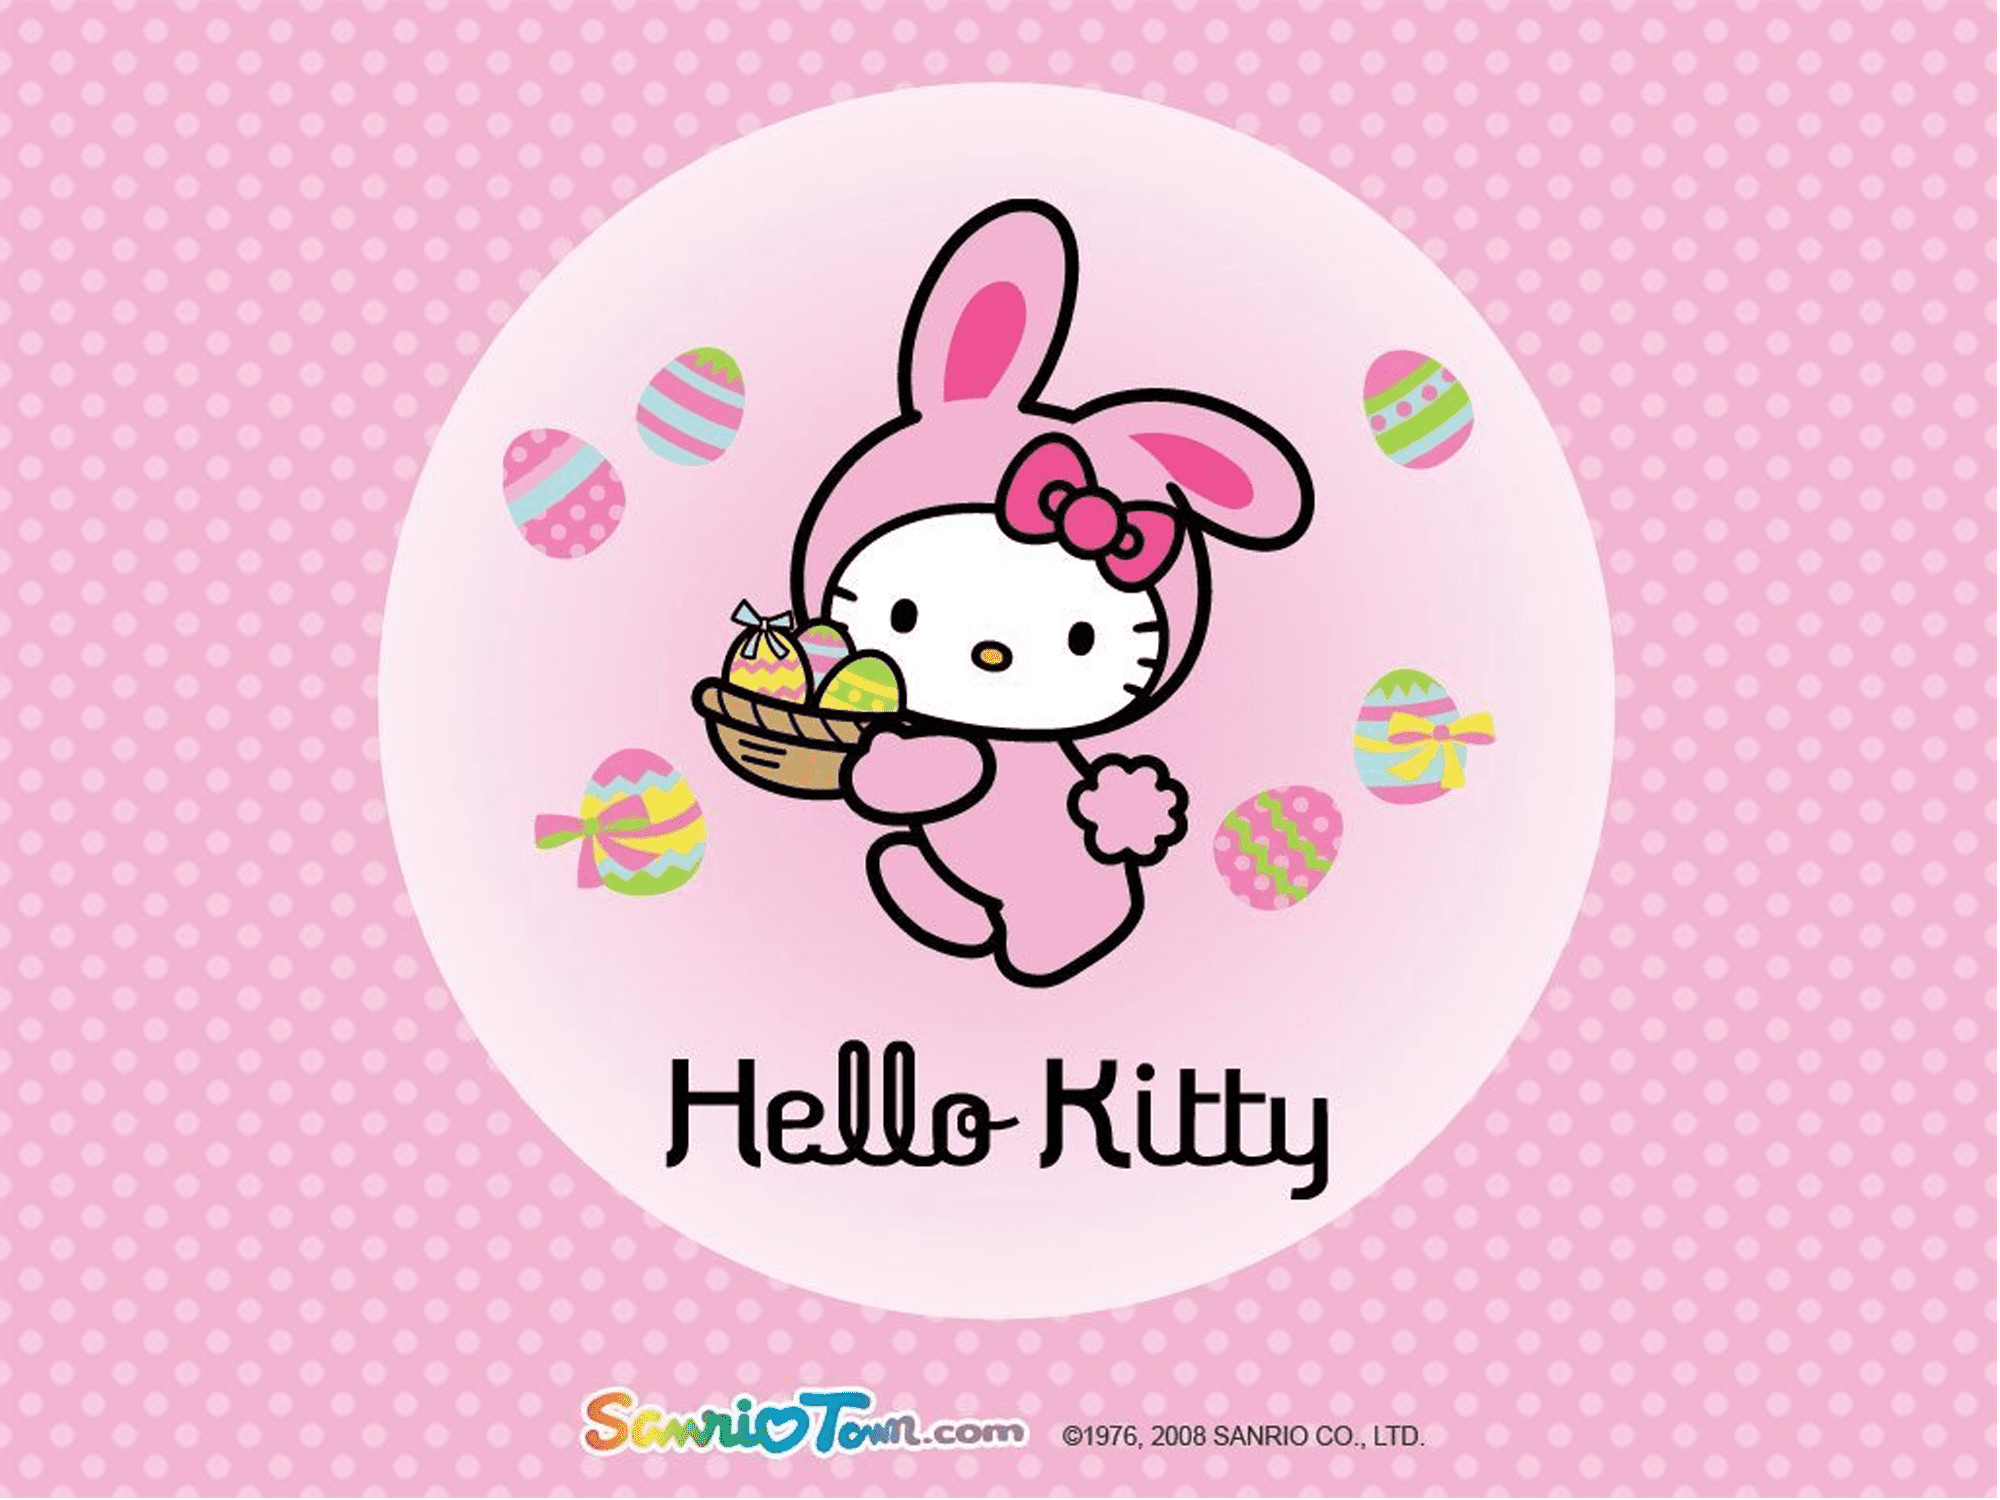 Most Inspiring Wallpaper Hello Kitty Ipad 2 - 1060682-amazing-pink-hello-kitty-background-2000x1500  You Should Have_249956.jpg